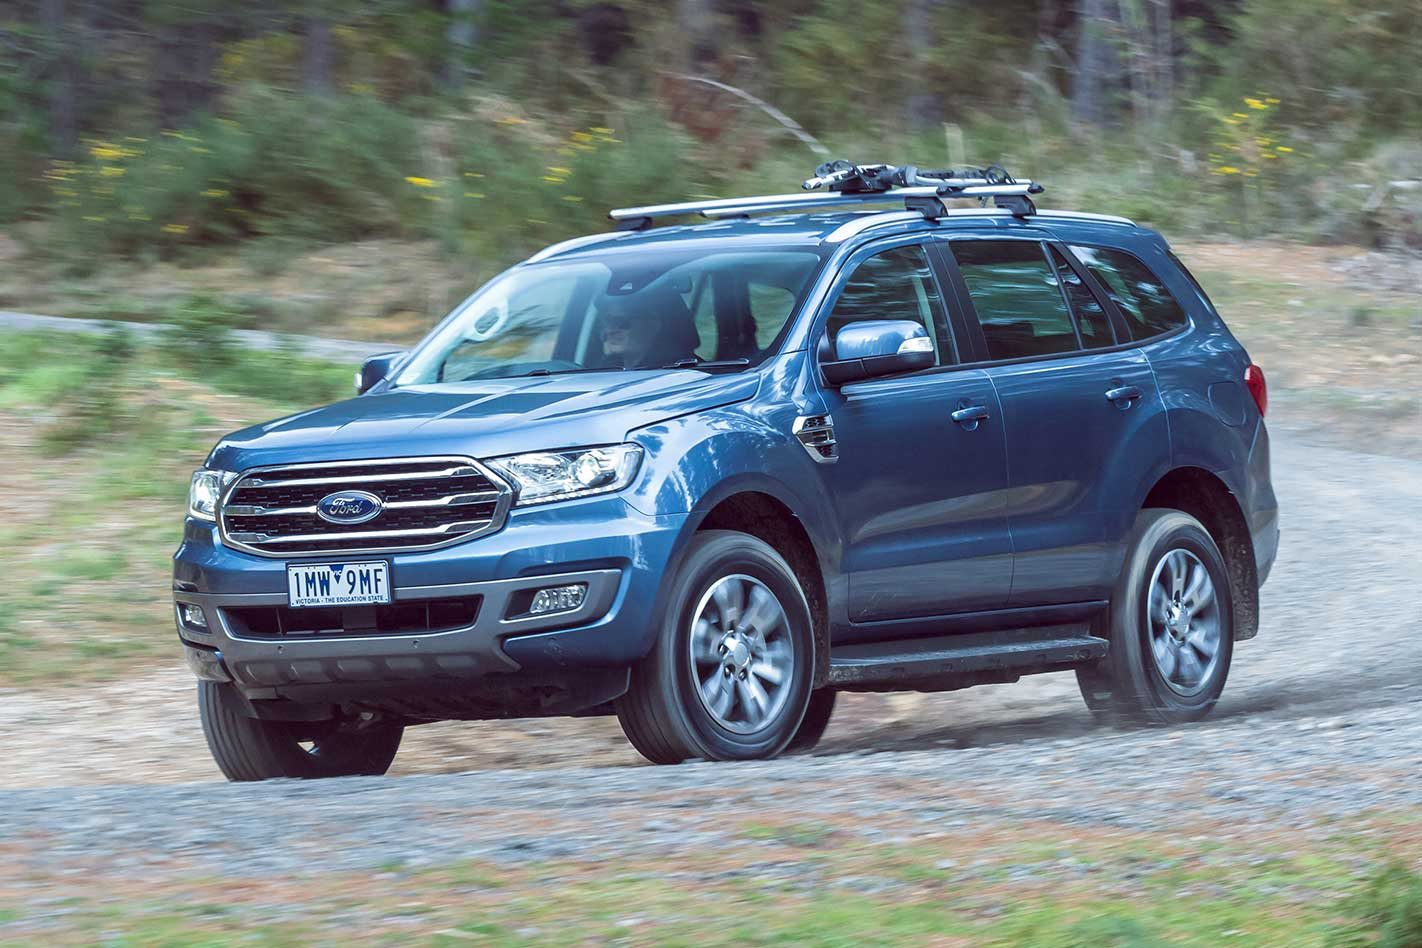 2019 ford everest 4x4 review